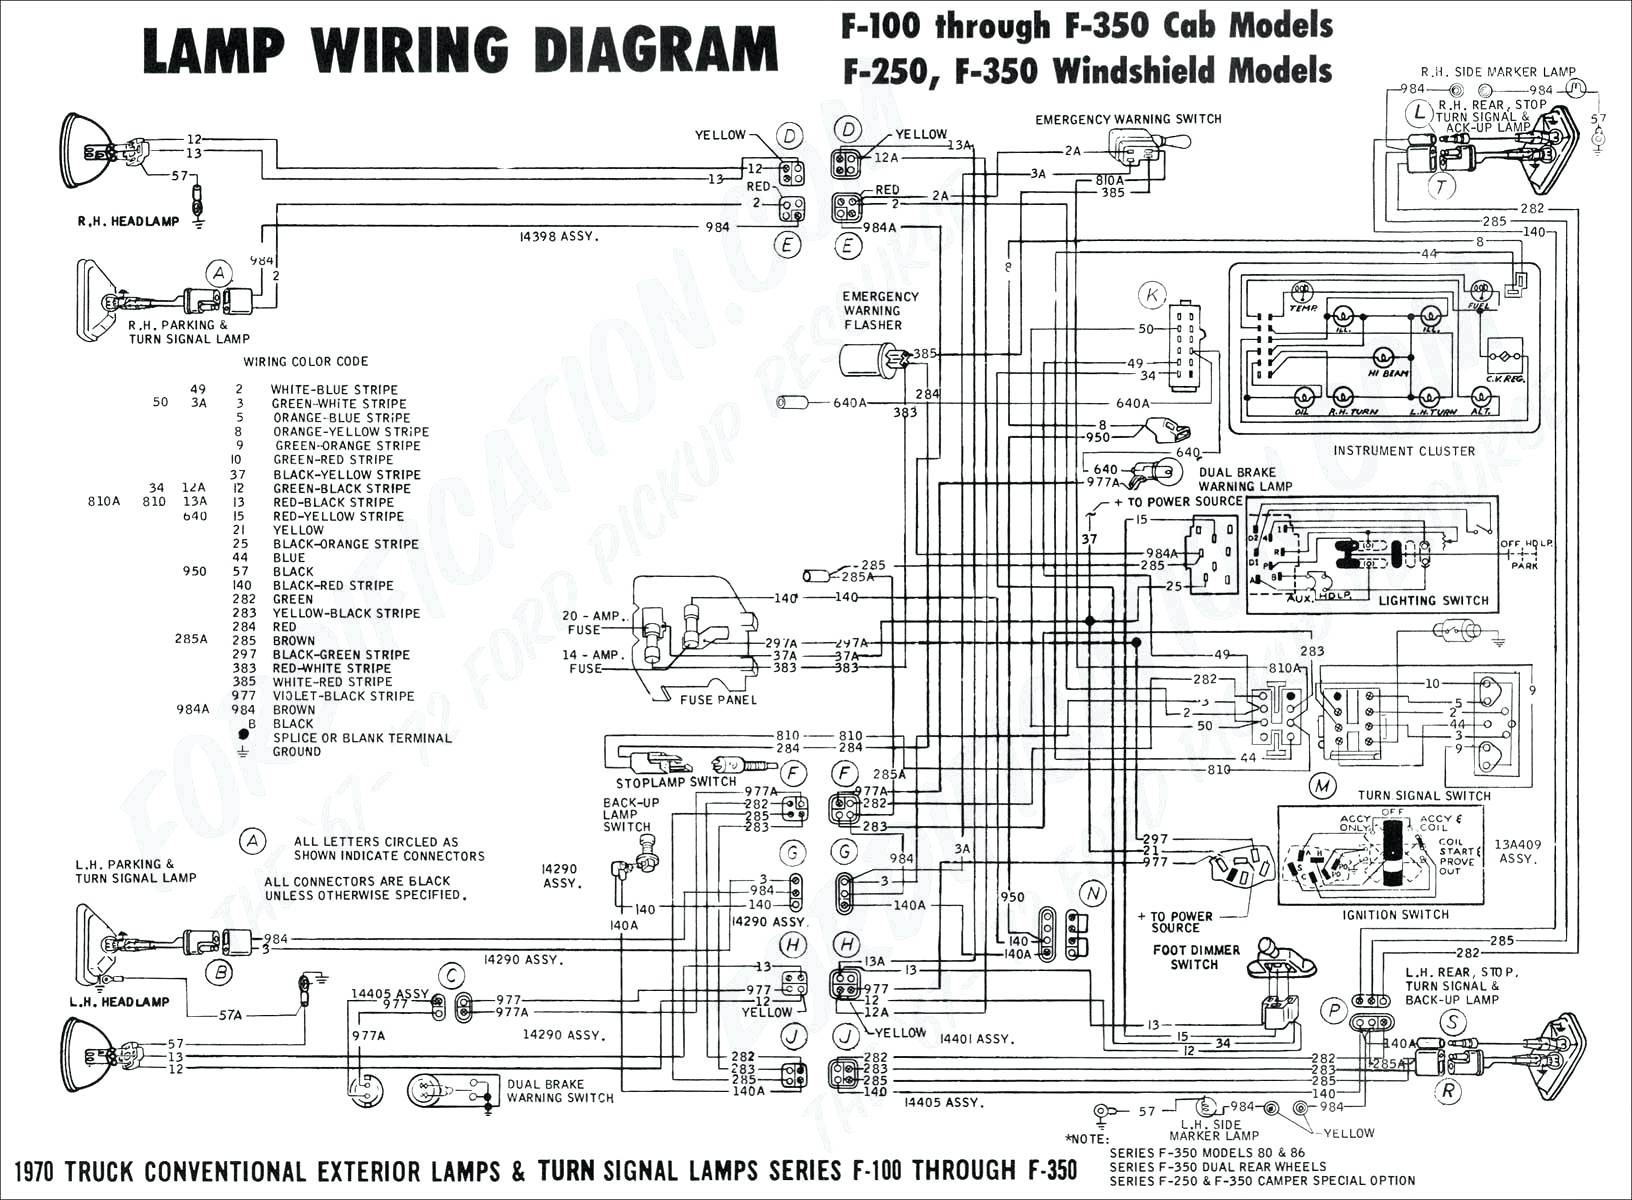 2002 cavalier engine diagram 1994 club car 36 volt wiring 2005 chevy silverado motor